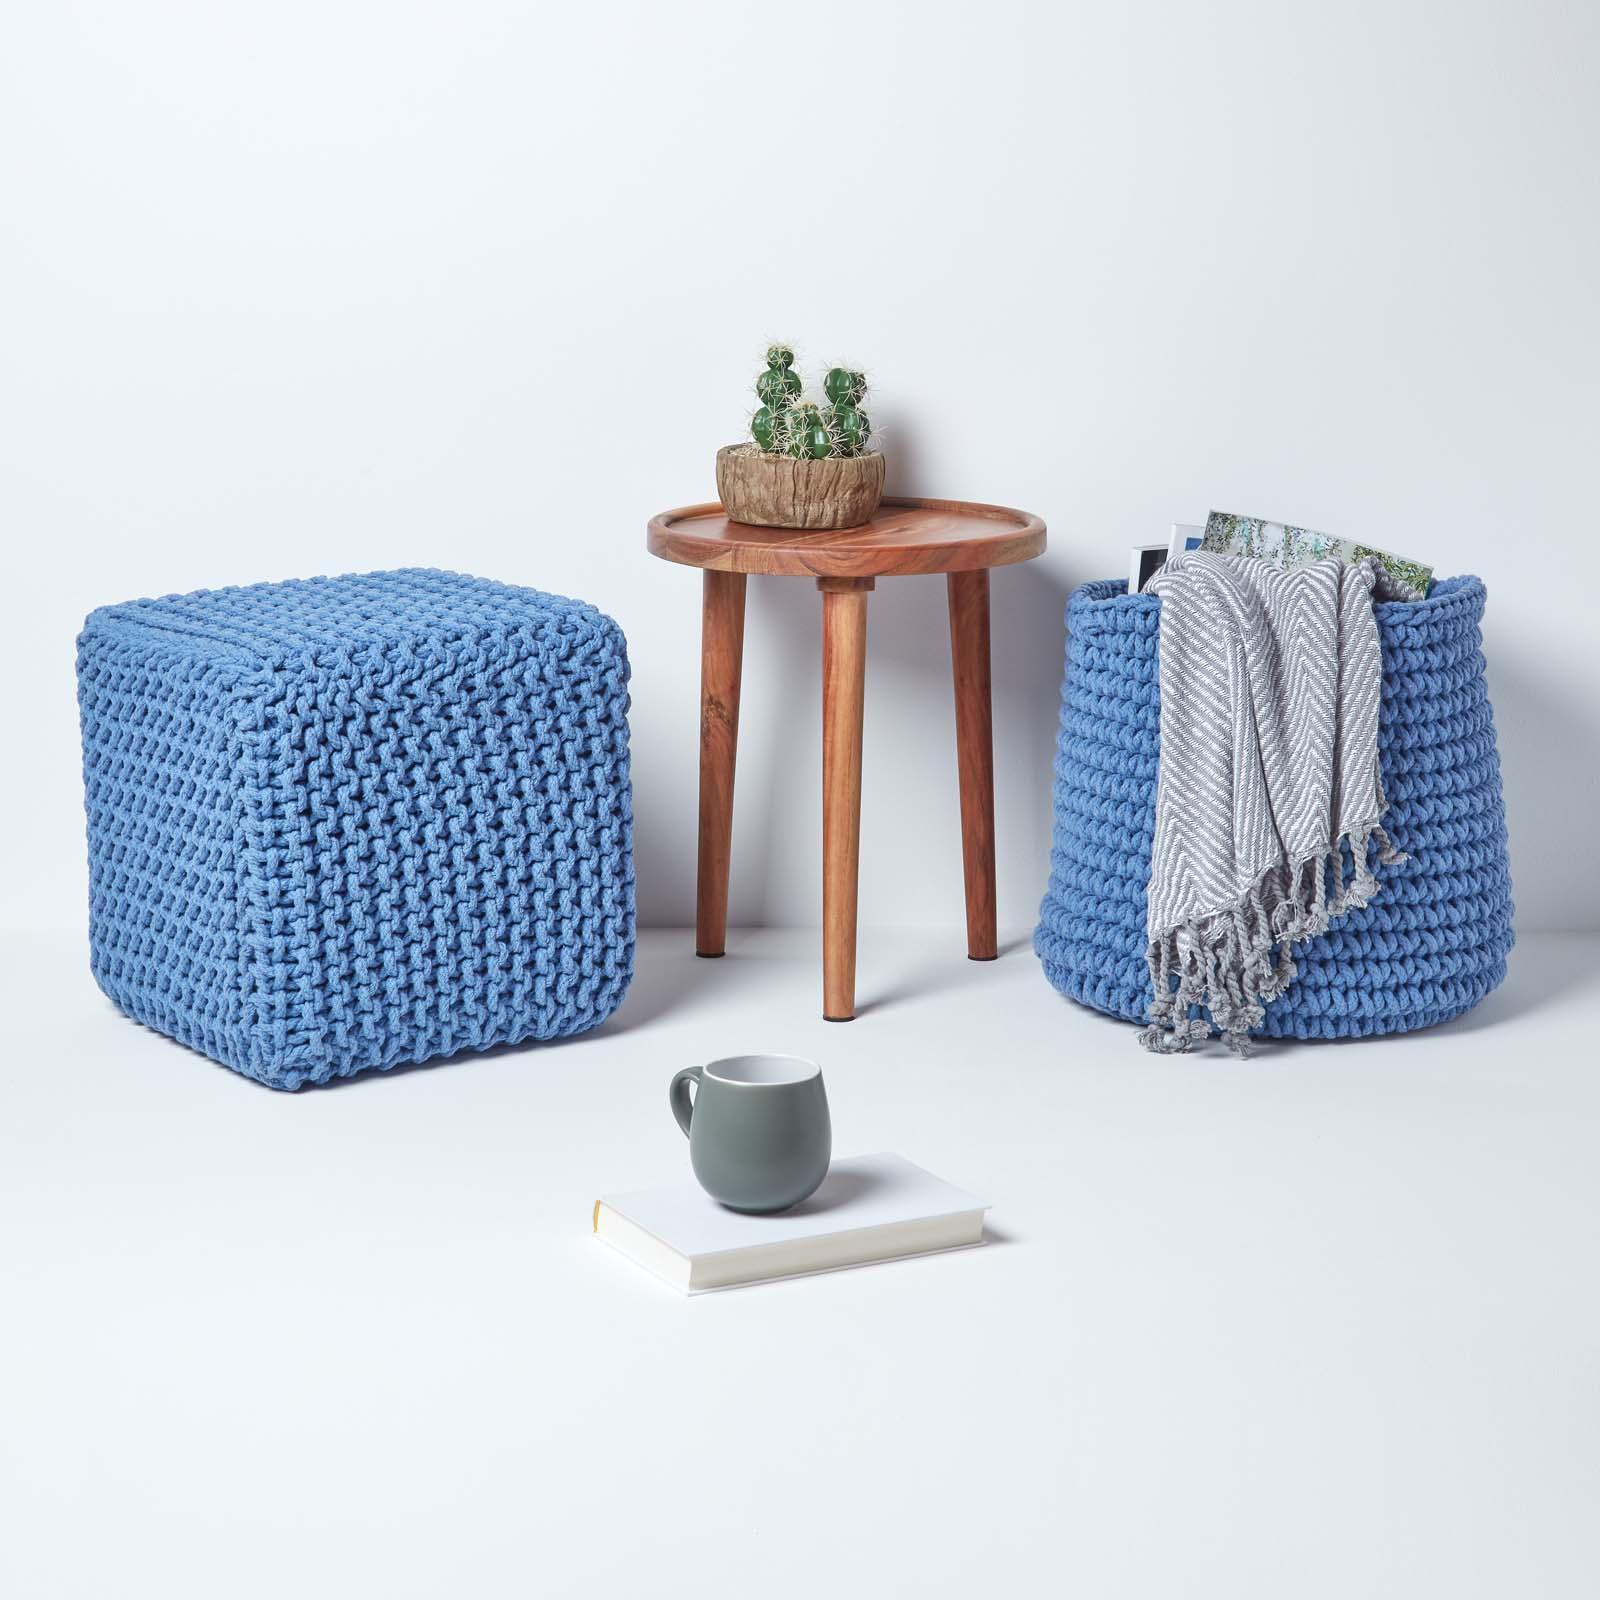 Hand-Knitted-100-Cotton-Pouffes-Round-Sphere-Or-Cube-Square-Chunky-Footstools thumbnail 26